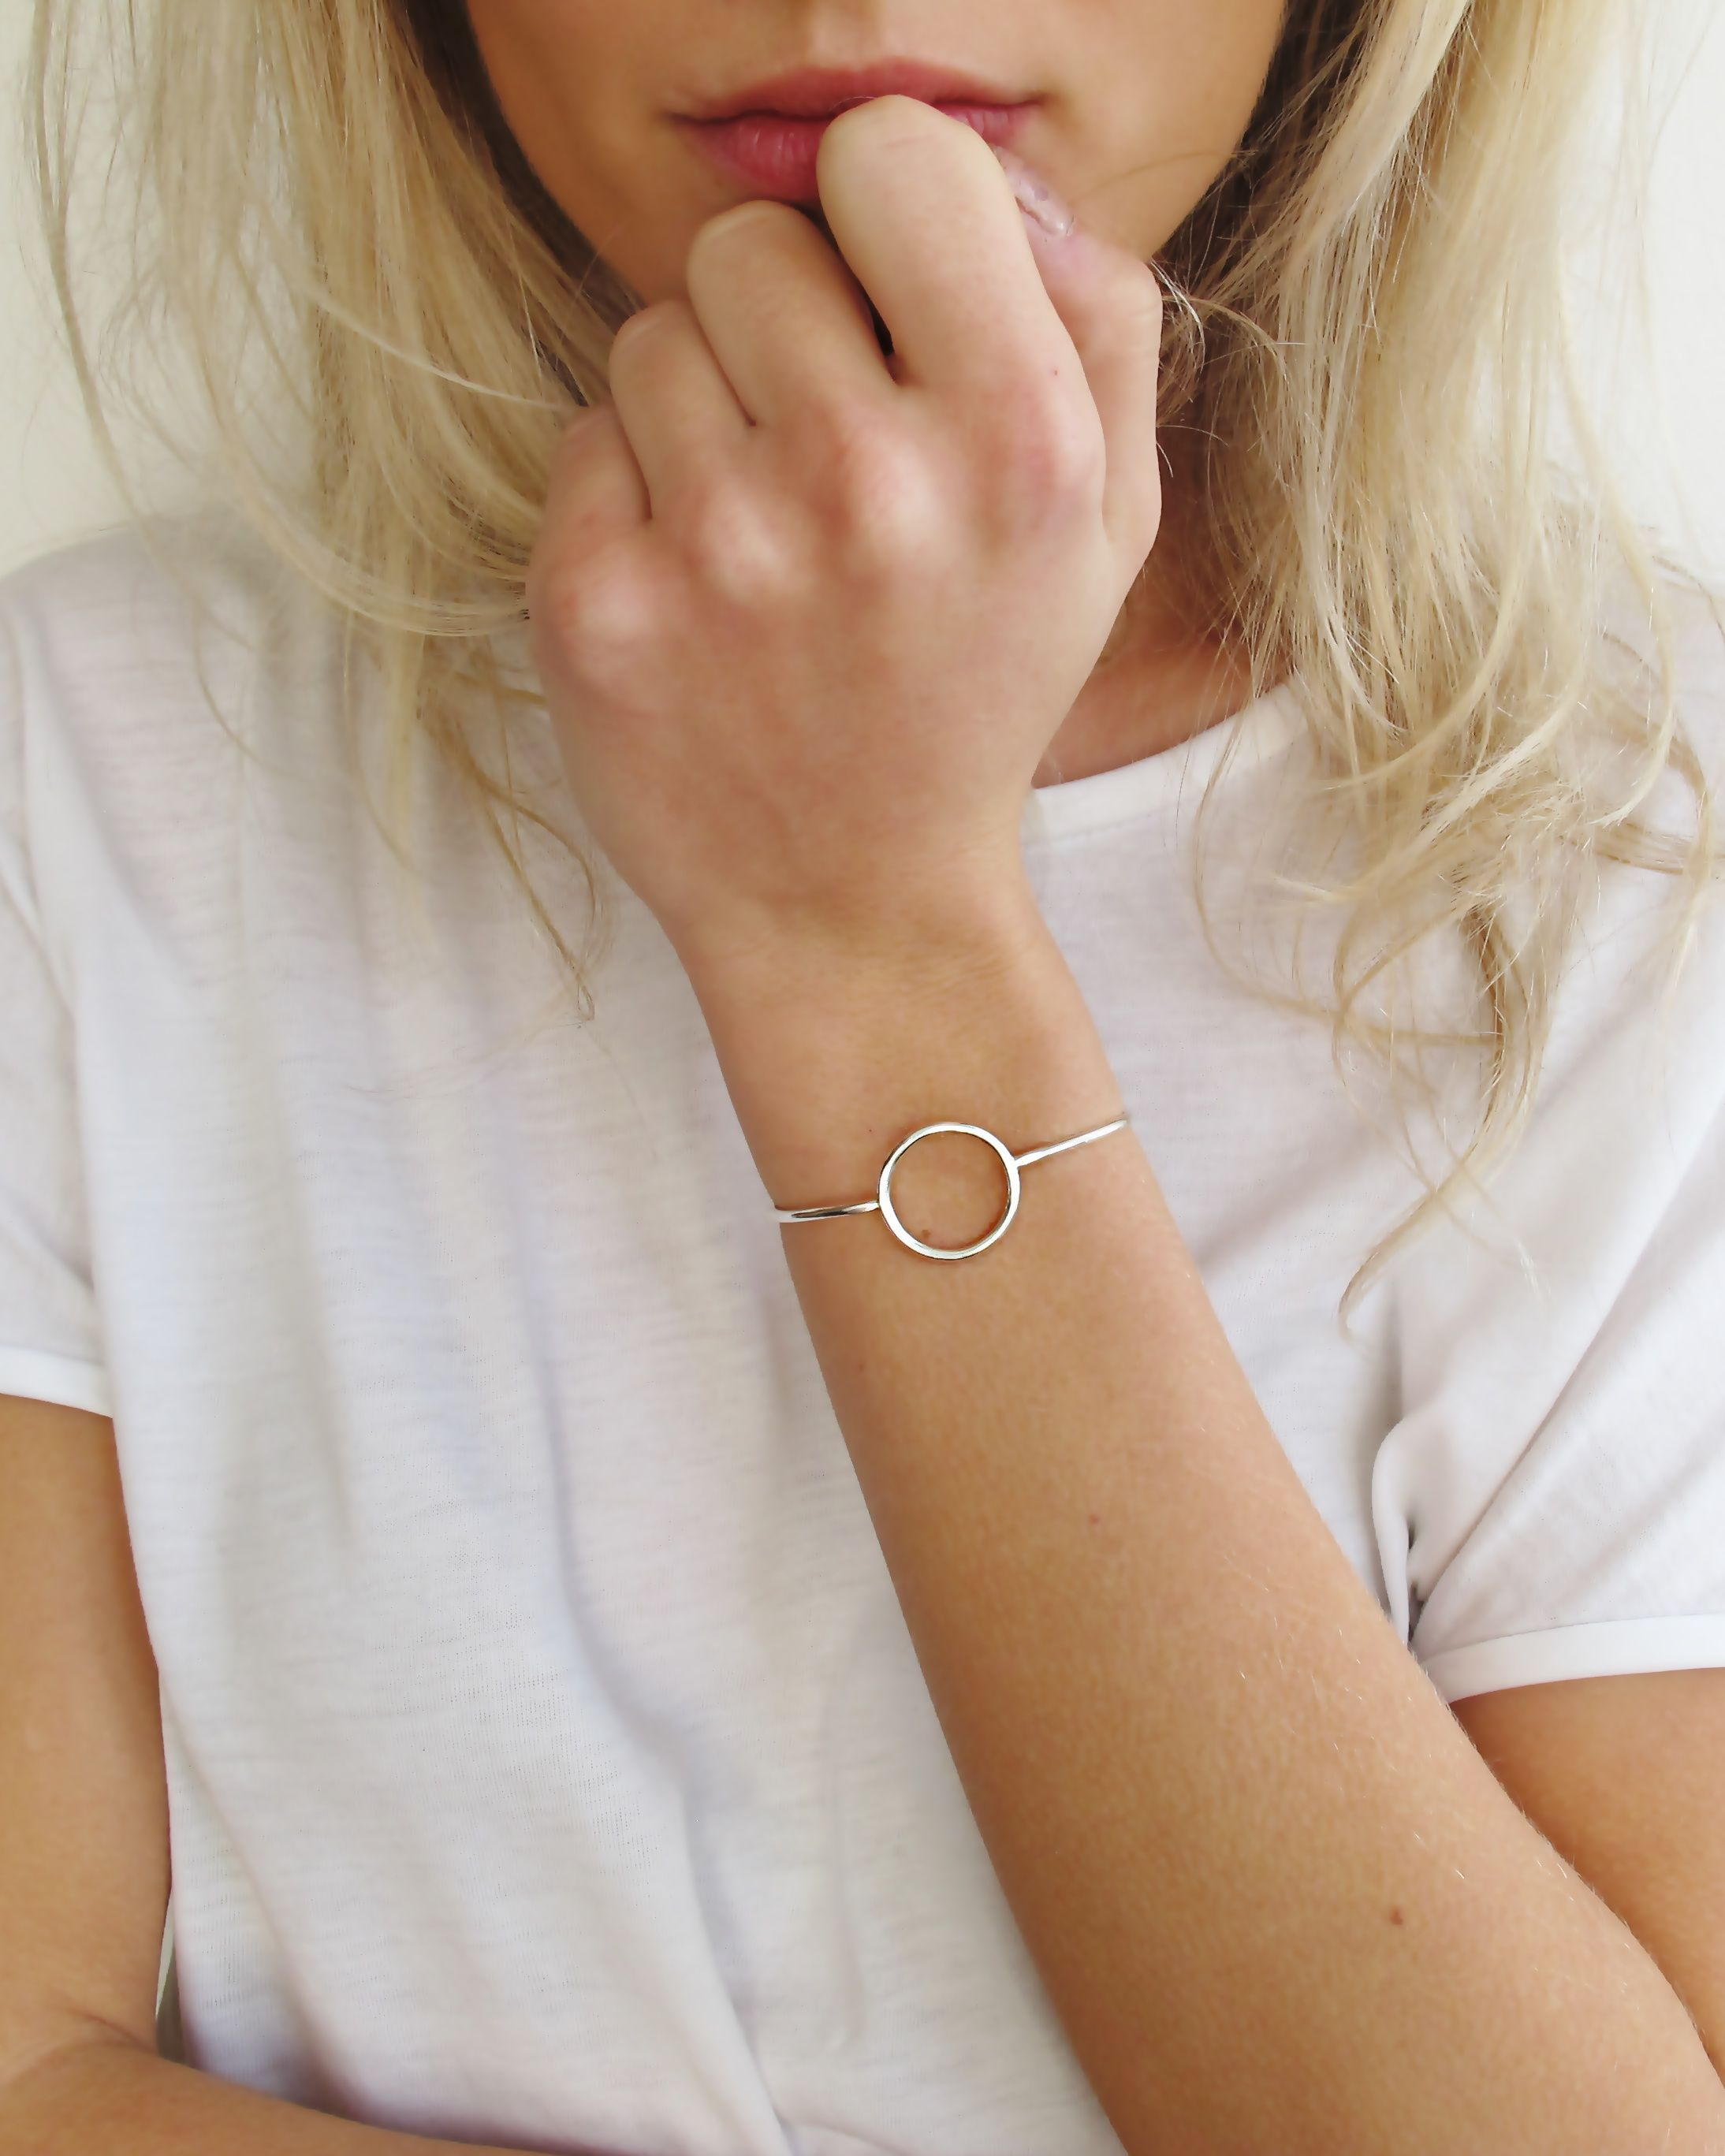 Ethical handmade jewellery brand based in london wild fawn is a